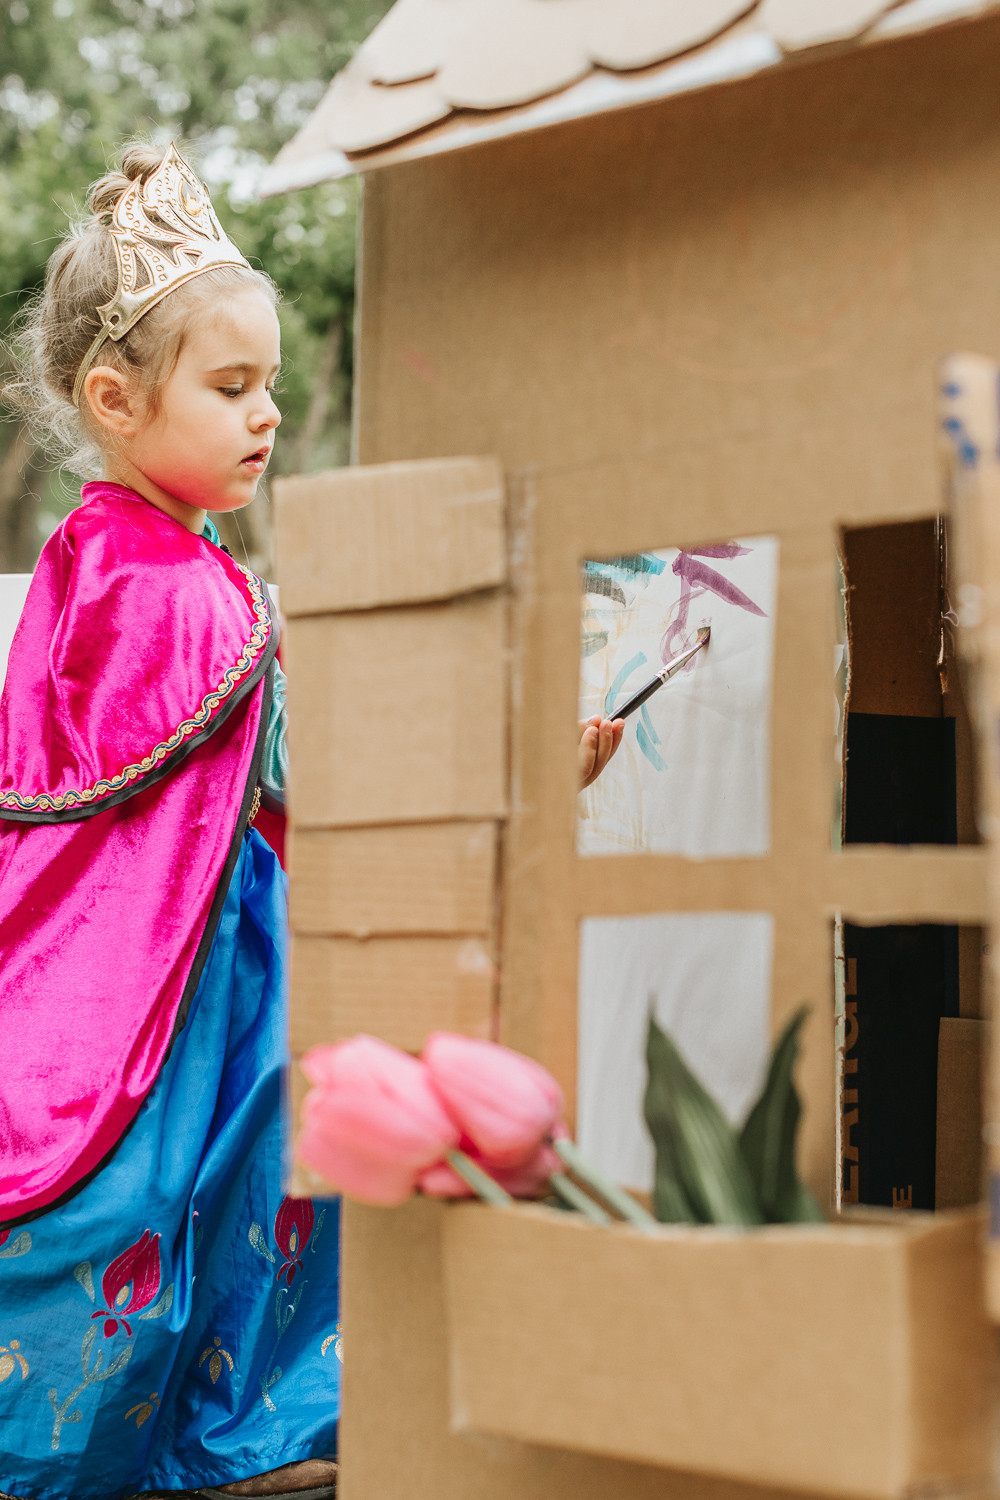 Kids Art Project with Cardboard Box